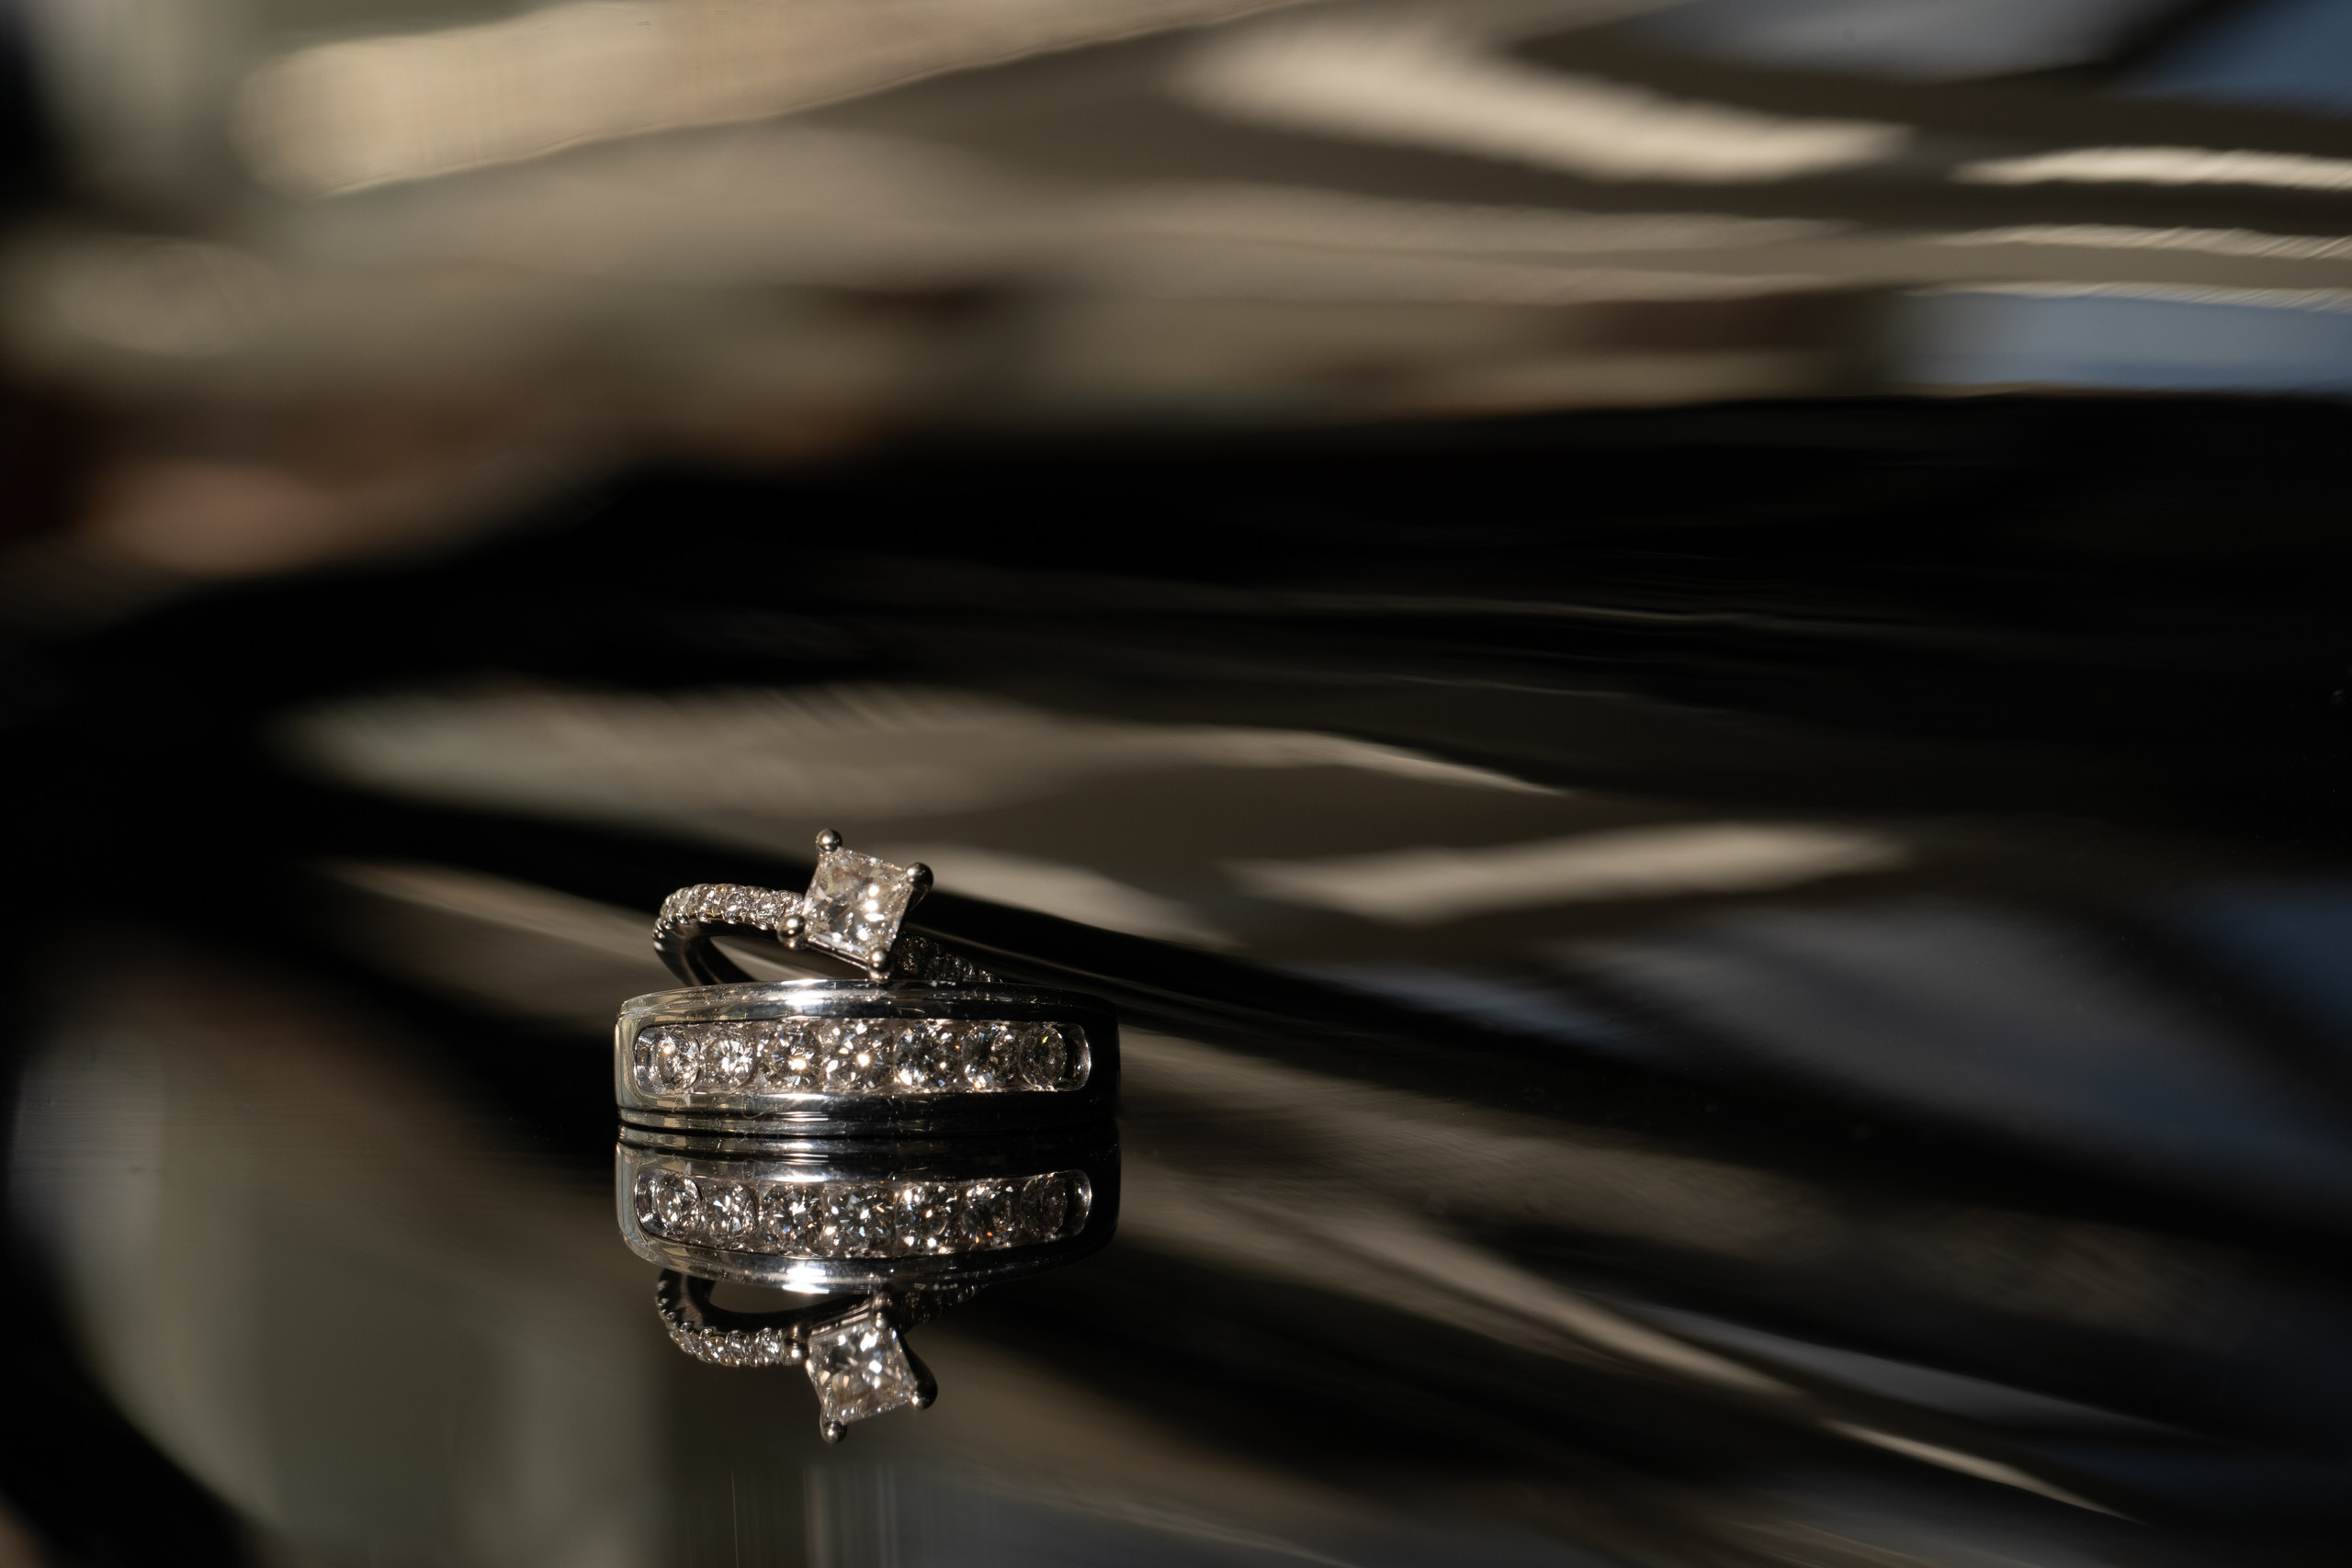 Bride and groom's gorgeous wedding bands before the wedding ceremony at the Hilton Main in Norfolk, Virginia.